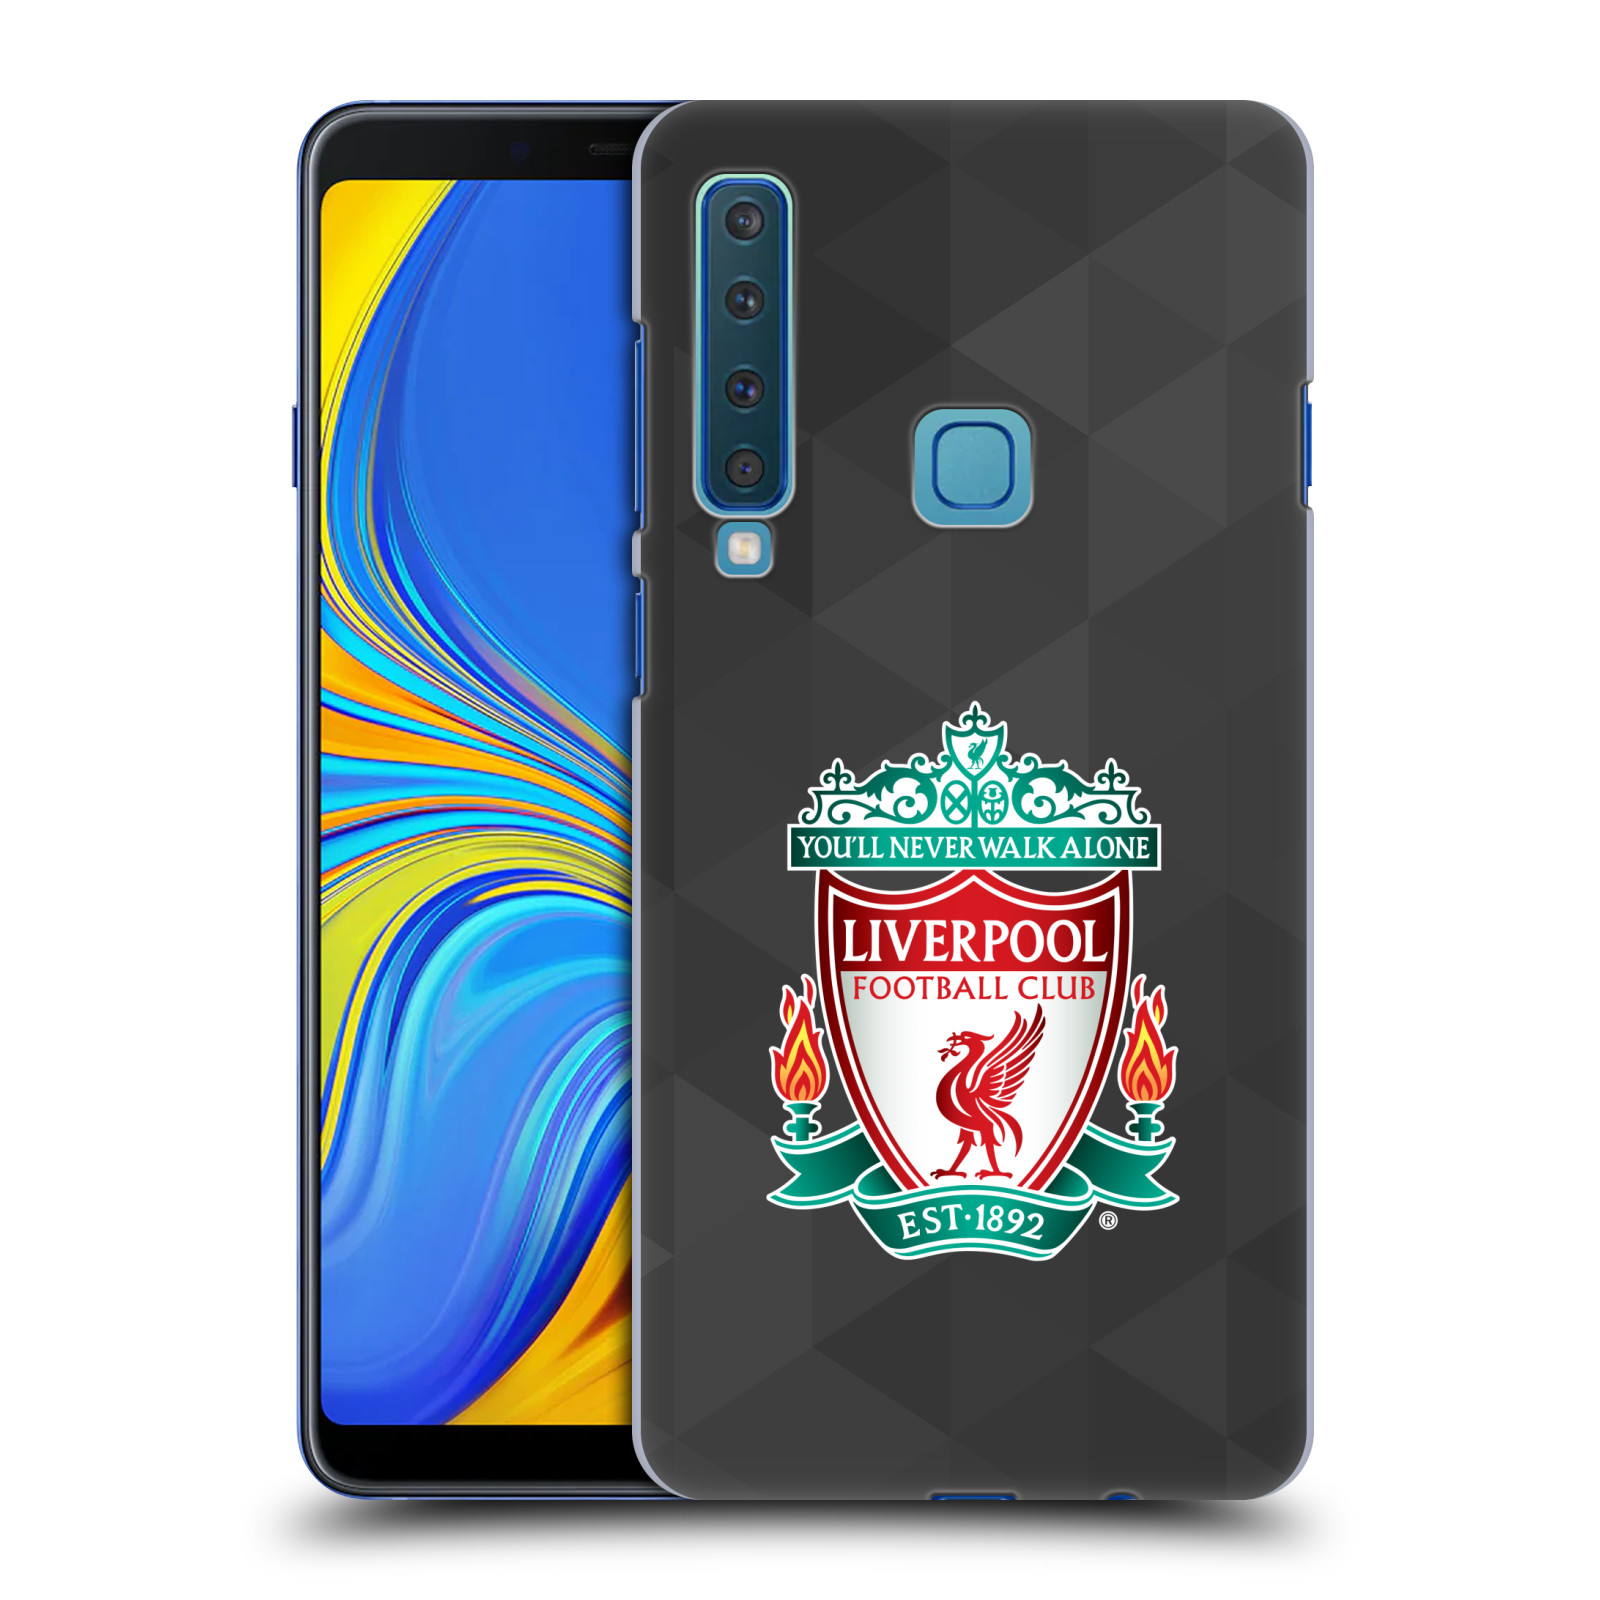 Plastové pouzdro na mobil Samsung Galaxy A9 (2018) - Head Case - ZNAK LIVERPOOL FC OFFICIAL GEOMETRIC BLACK